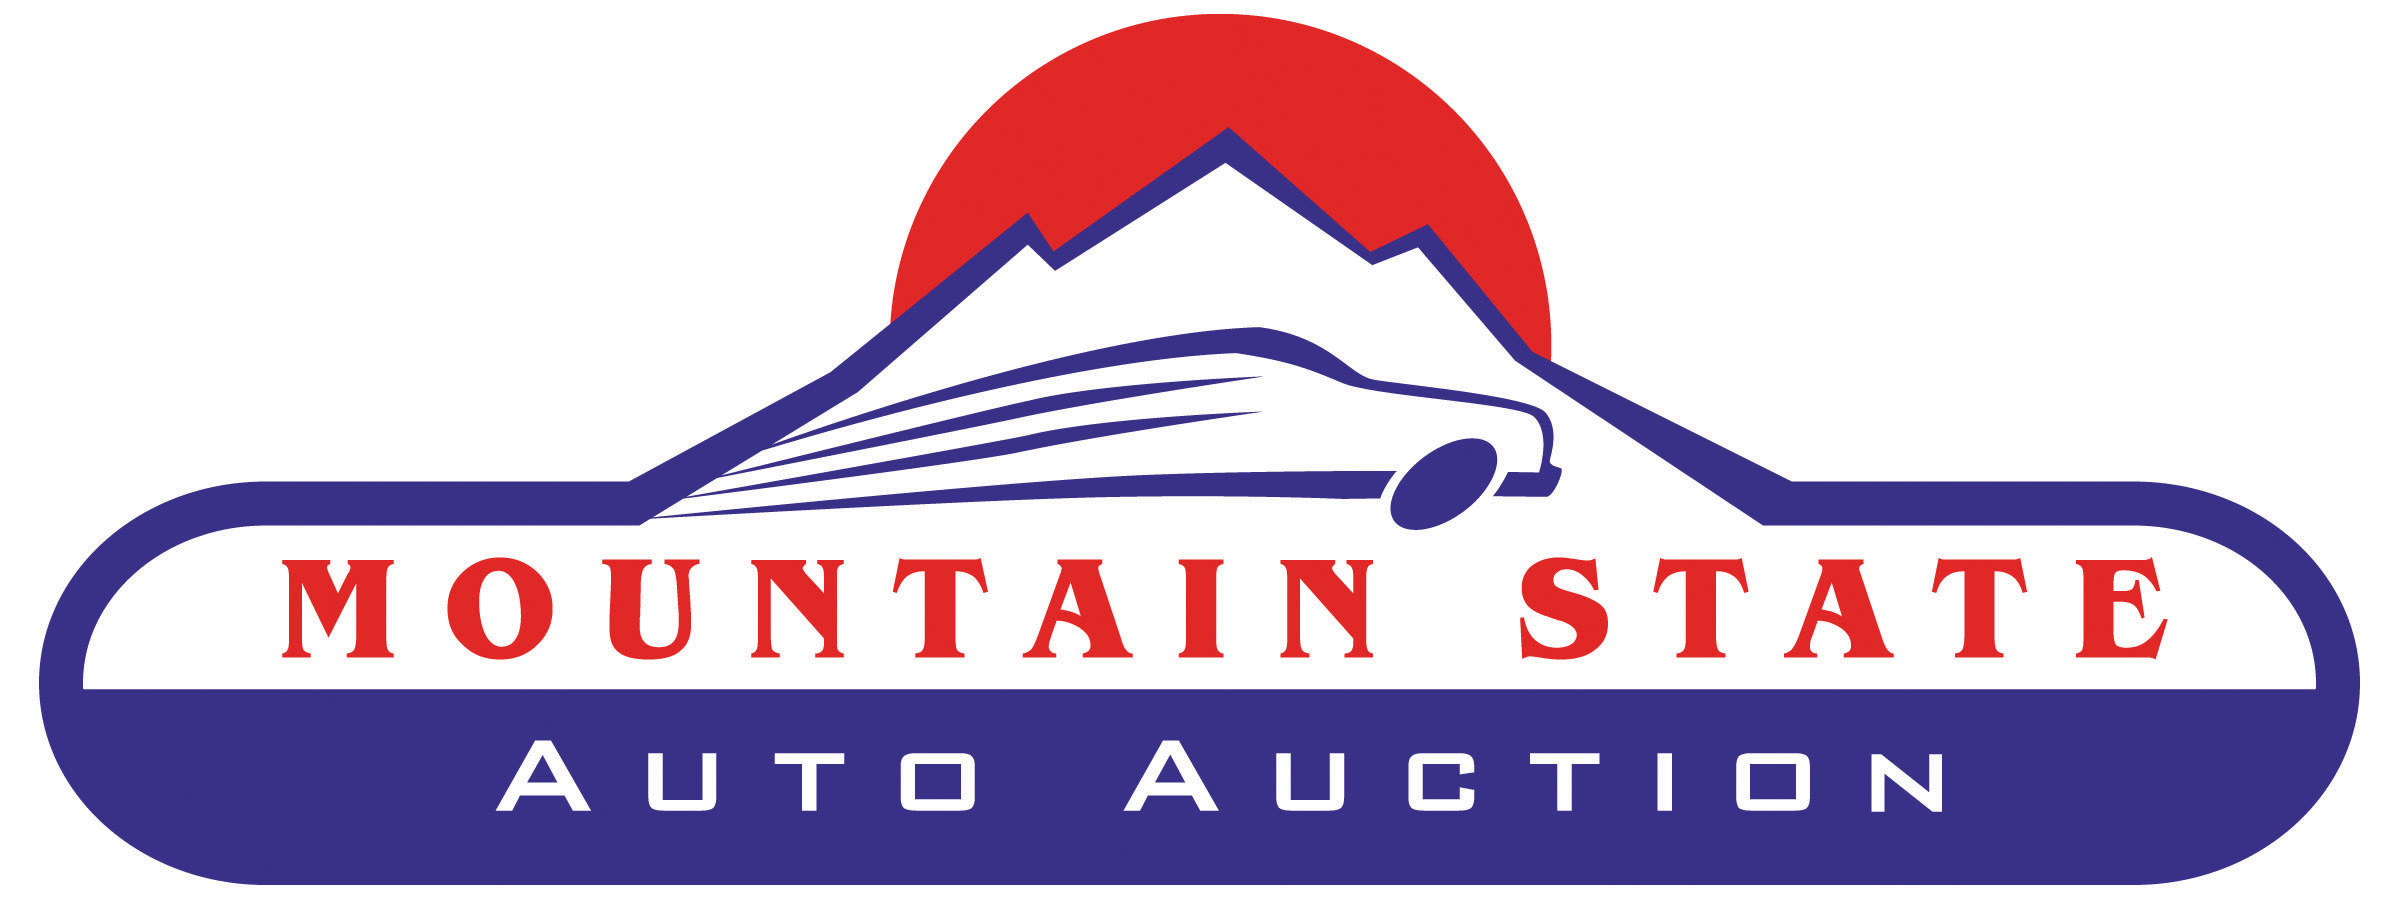 Mountain State Auto Auction